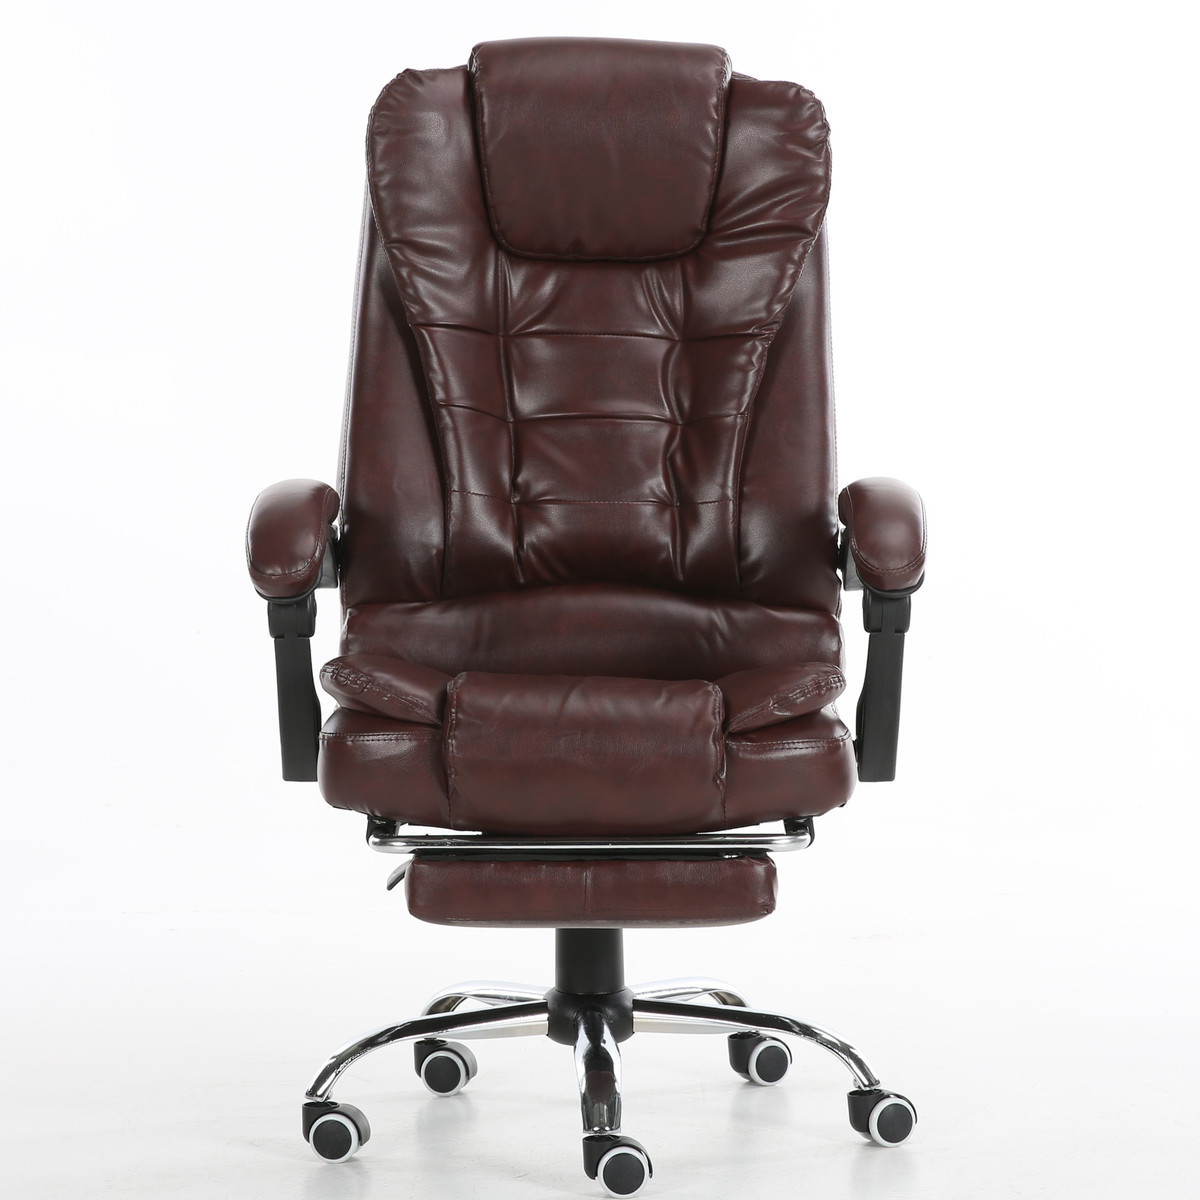 Купить с кэшбэком Motor-driven Massage gaming Work Genuine leather Chair executive luxury Office furniture Lift Computer footrest-for-office Chair